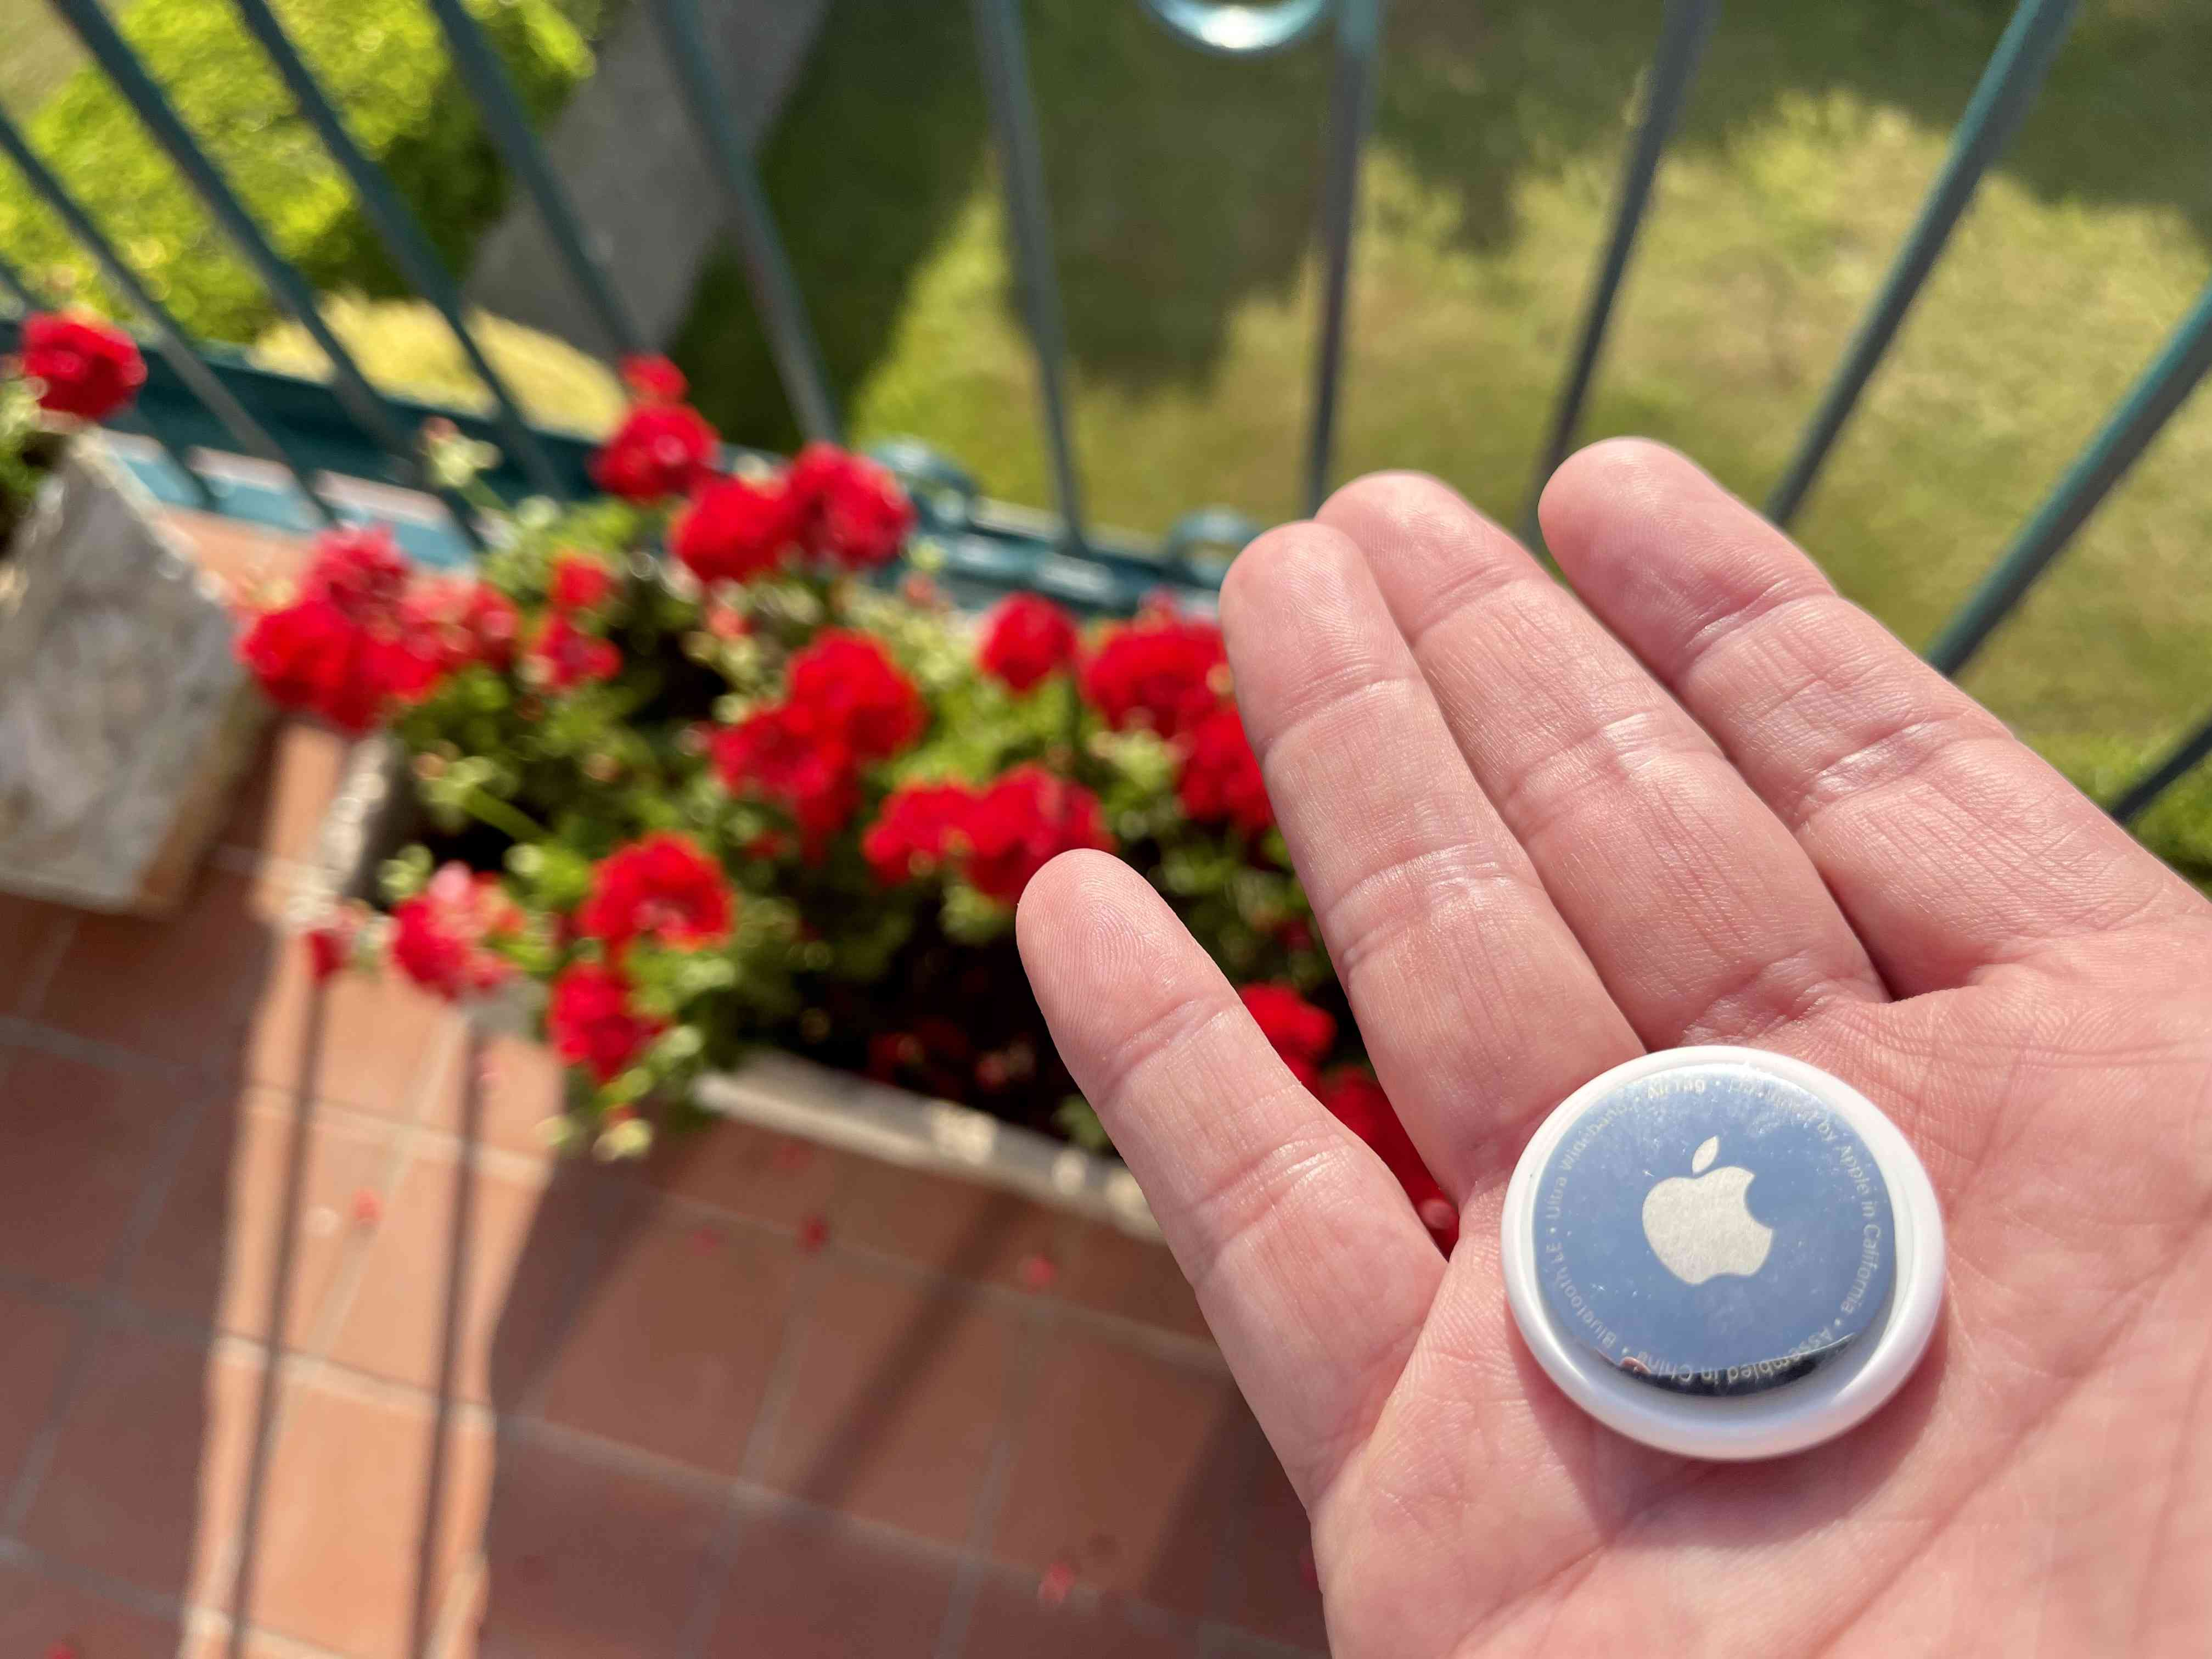 Closeup of someone holding an Apple AirTag outdoors.